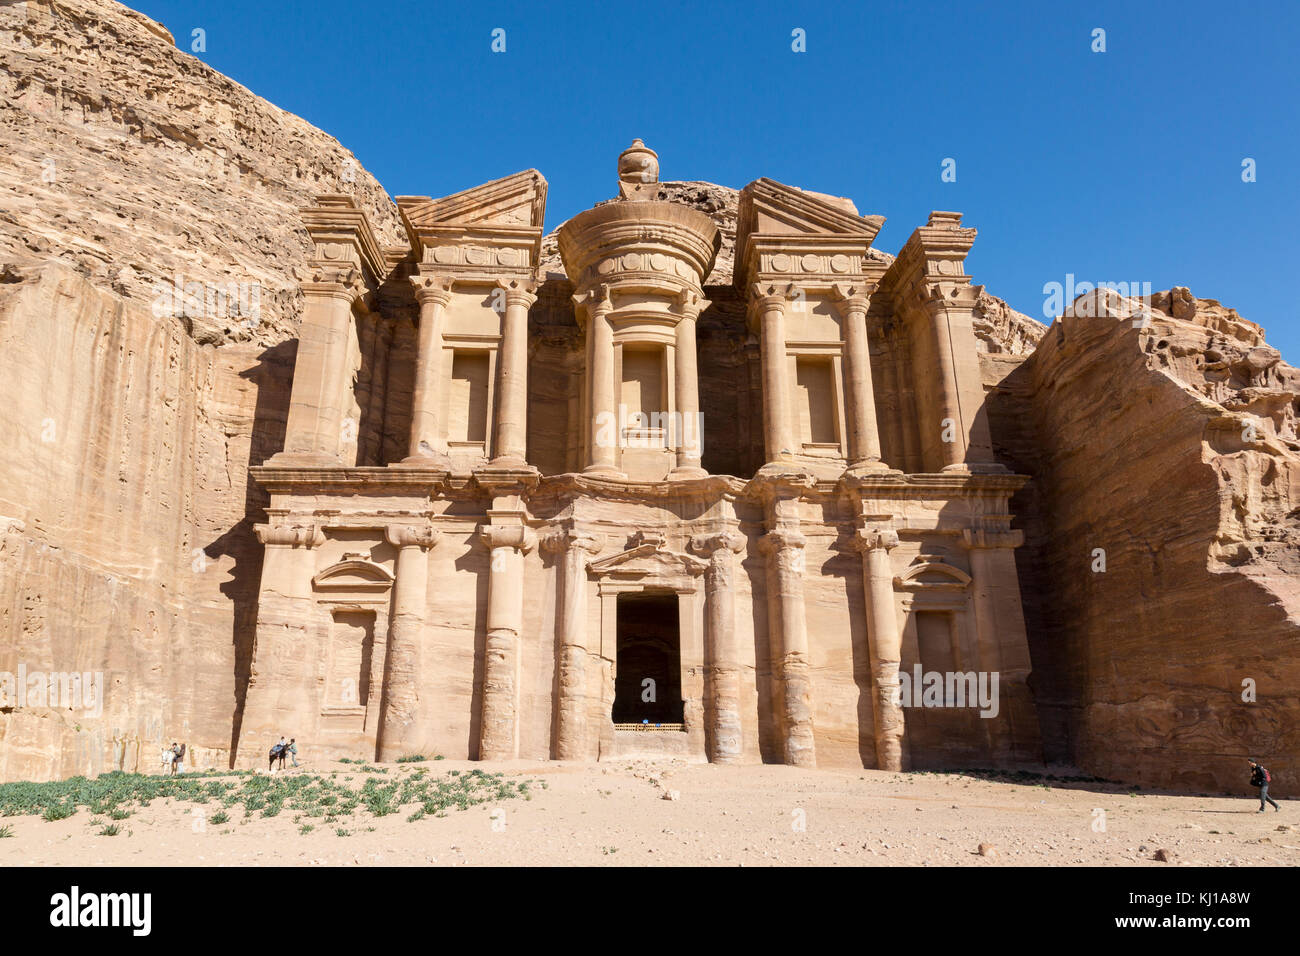 The Monastery Al Deir in Petra, Jordan Stock Photo